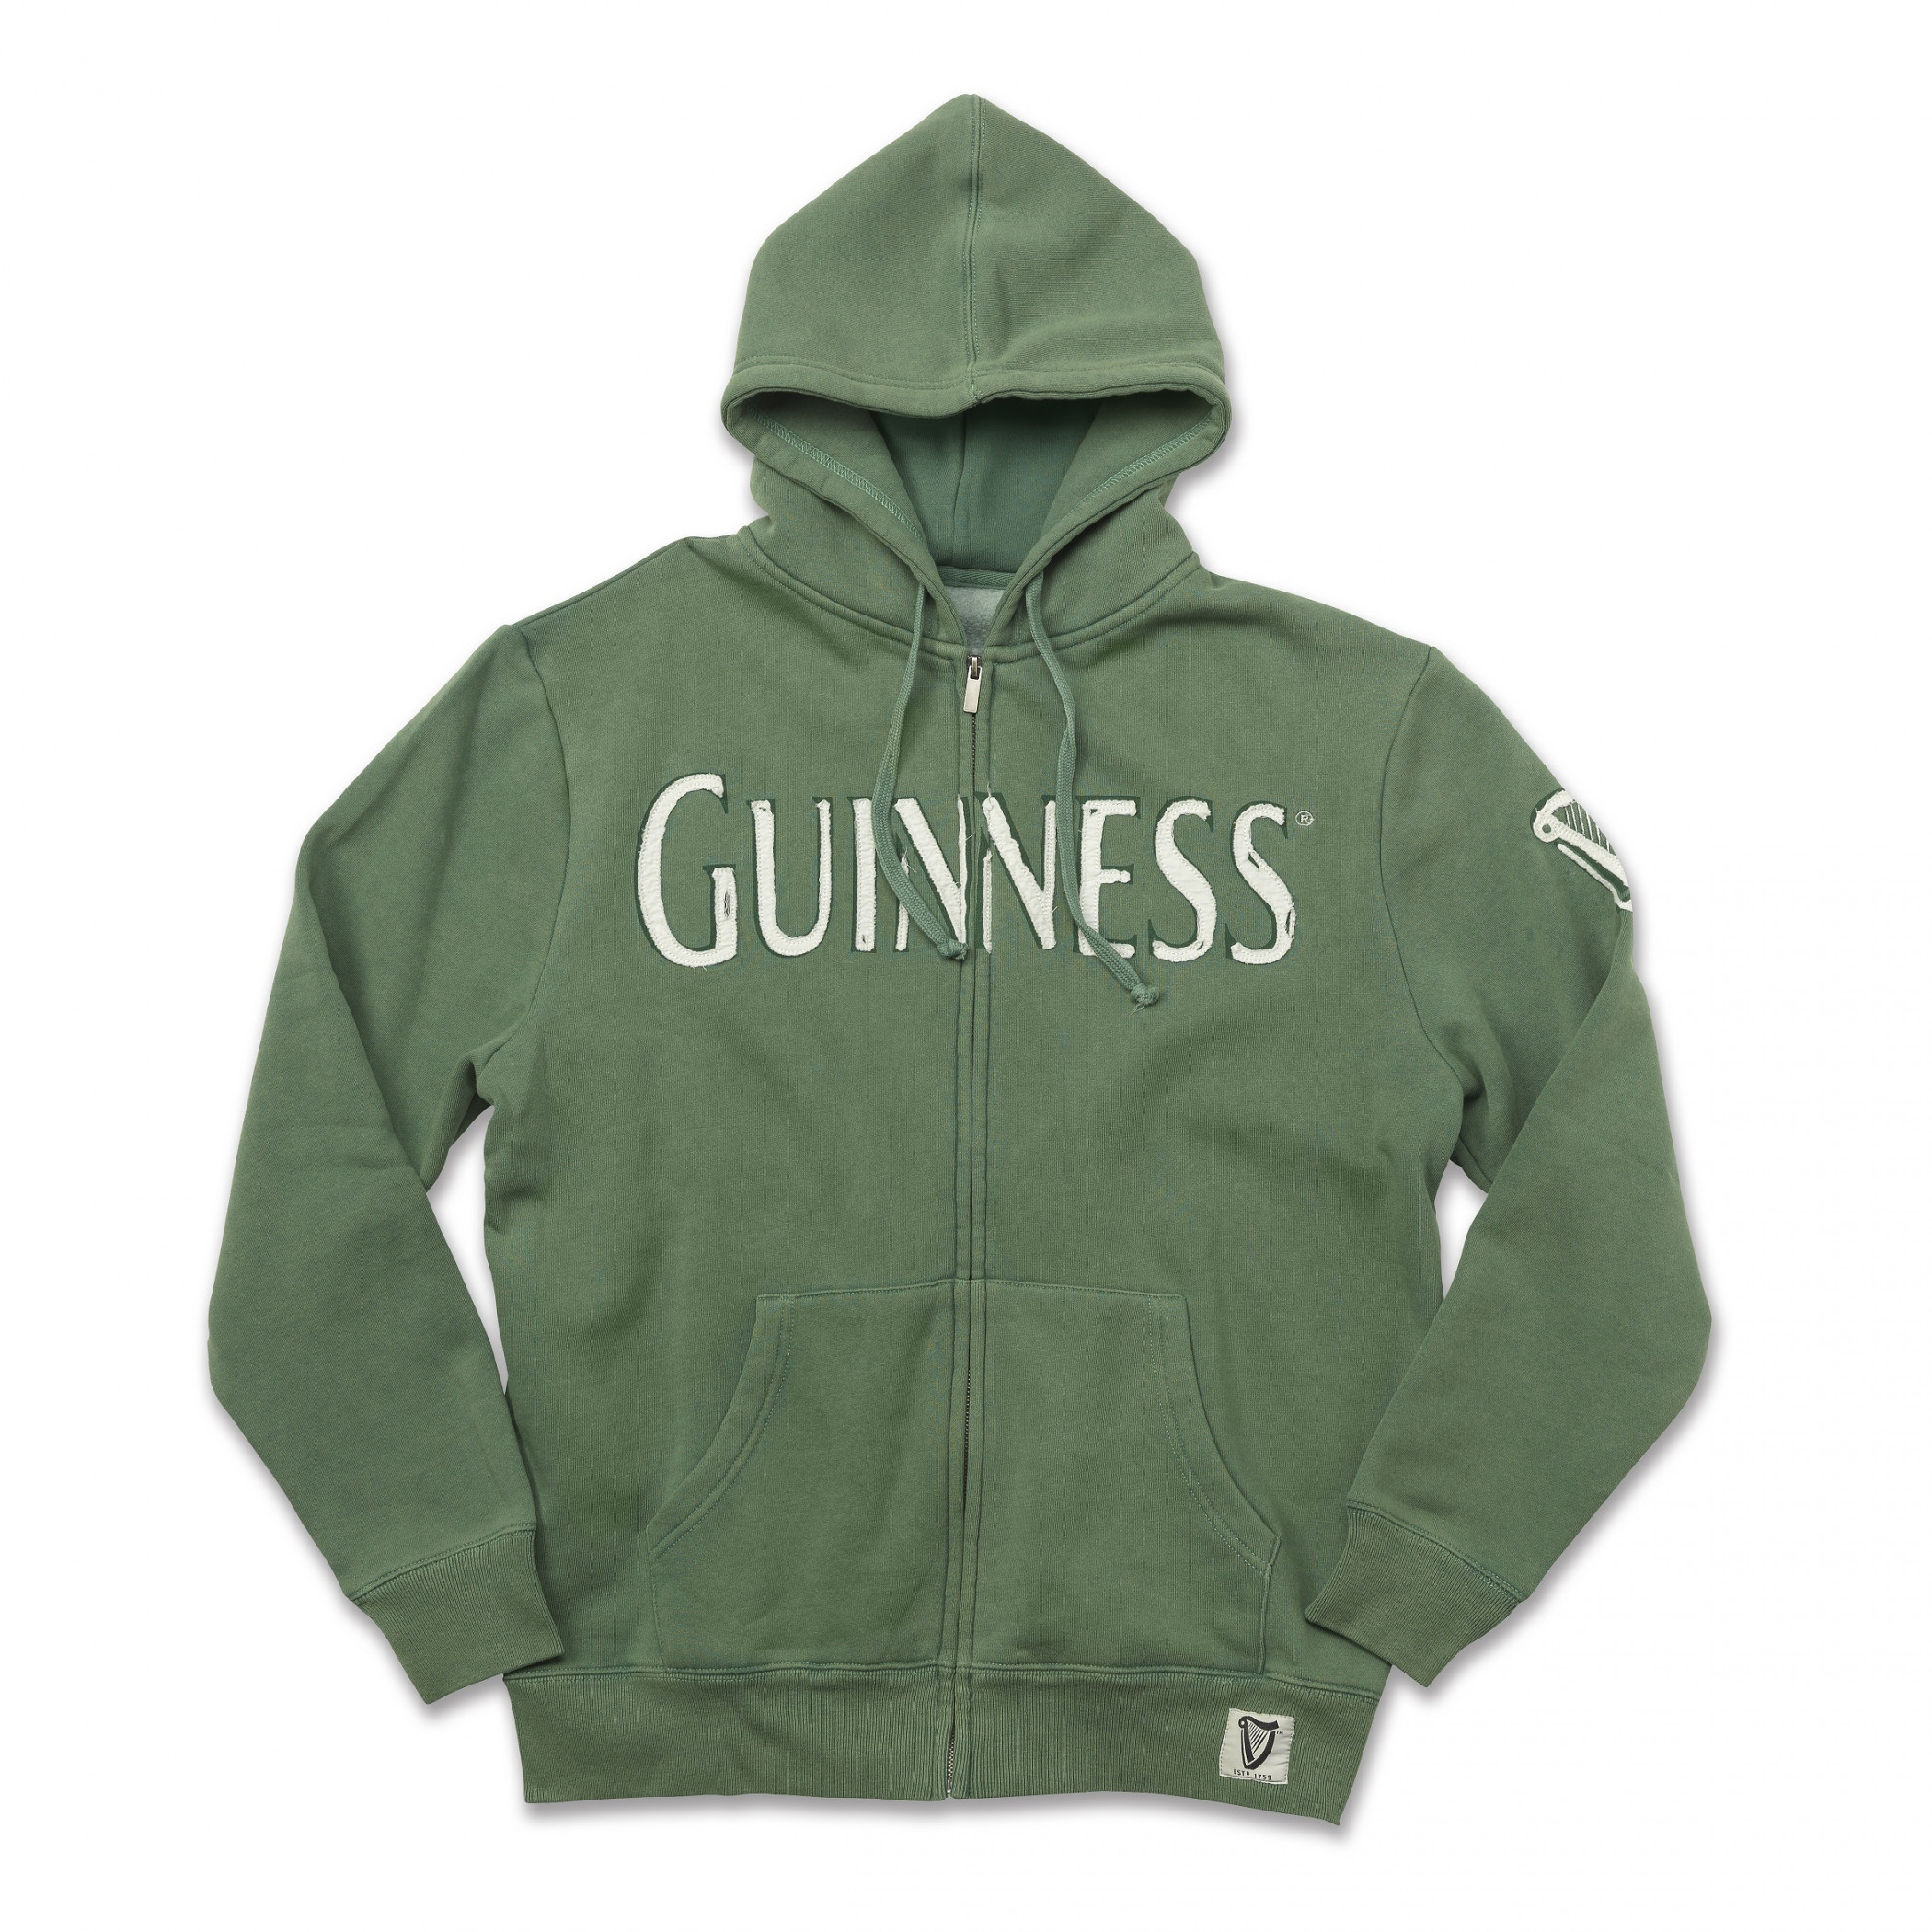 Guinness Stout Green Zip Up Hoodie